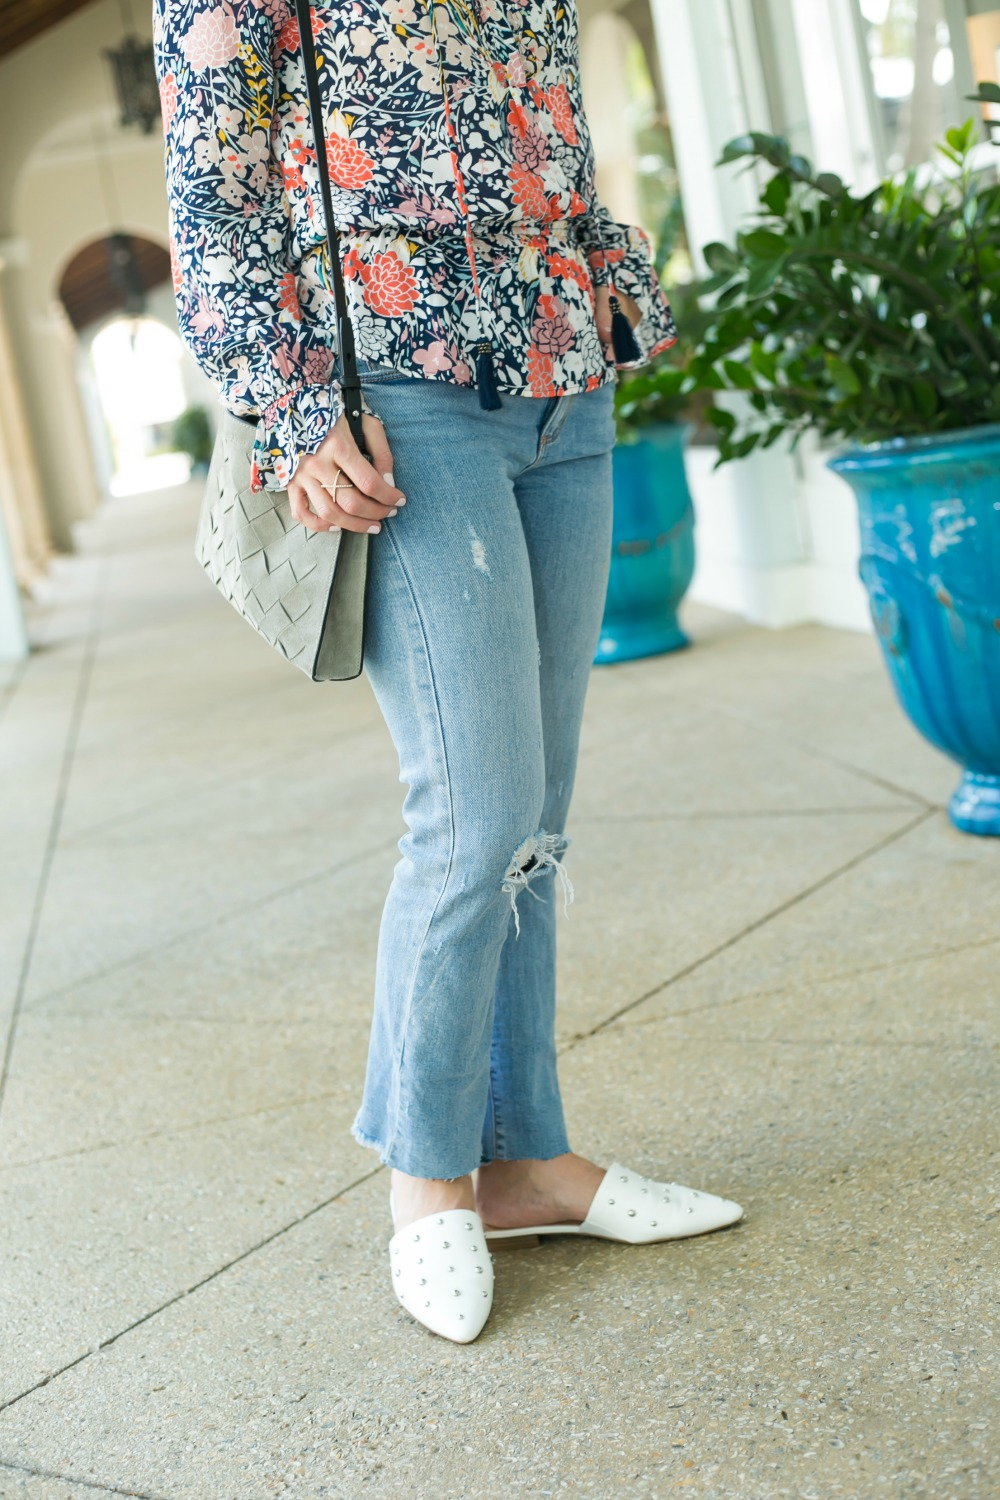 #fallstyle | Target | LOFT | Anthropologie | The Hottest Fall Trends for Warmer Weather featured by popular Florida fashion blogger The Modern Savvy